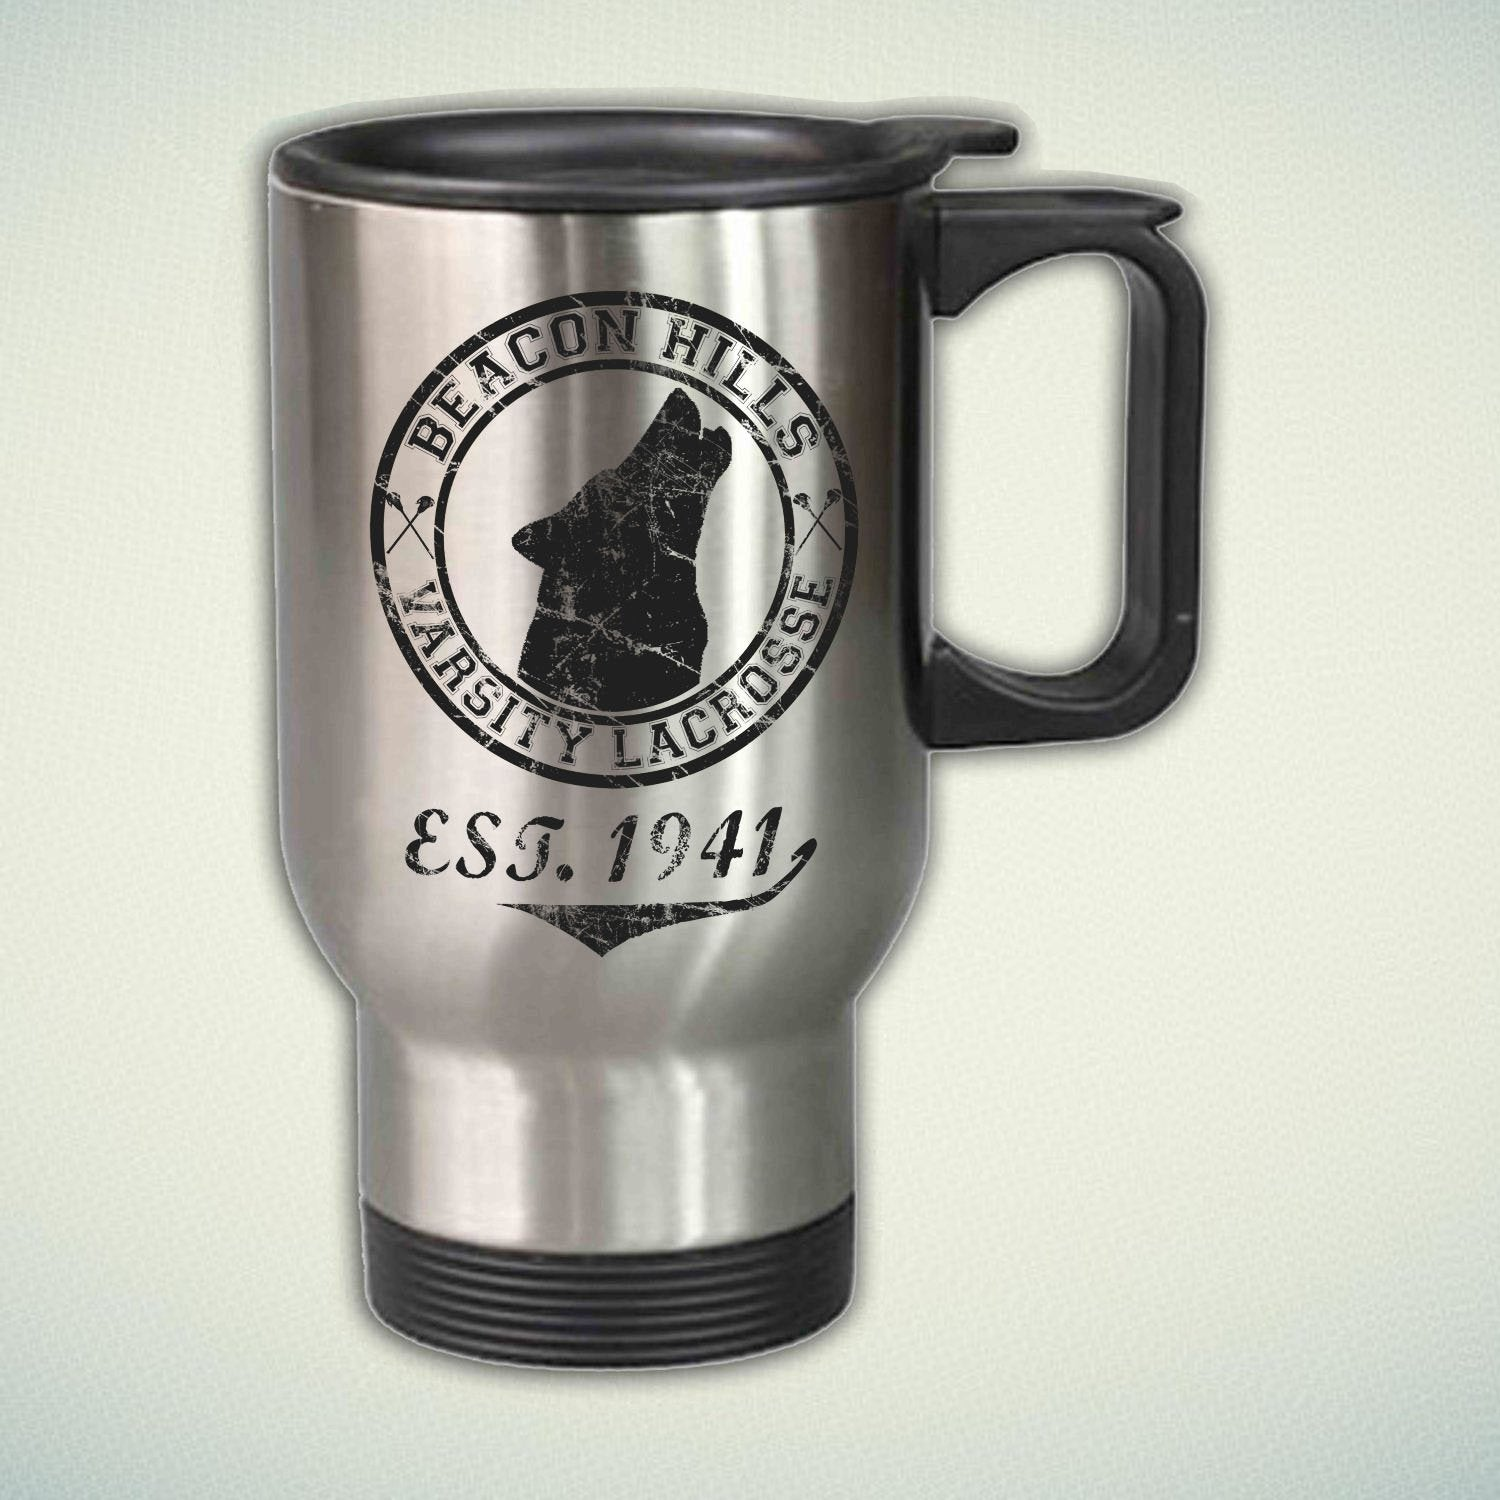 Beacon Hills Varsity Lacrosse Logo 14oz Stainless Steel Travel Mug